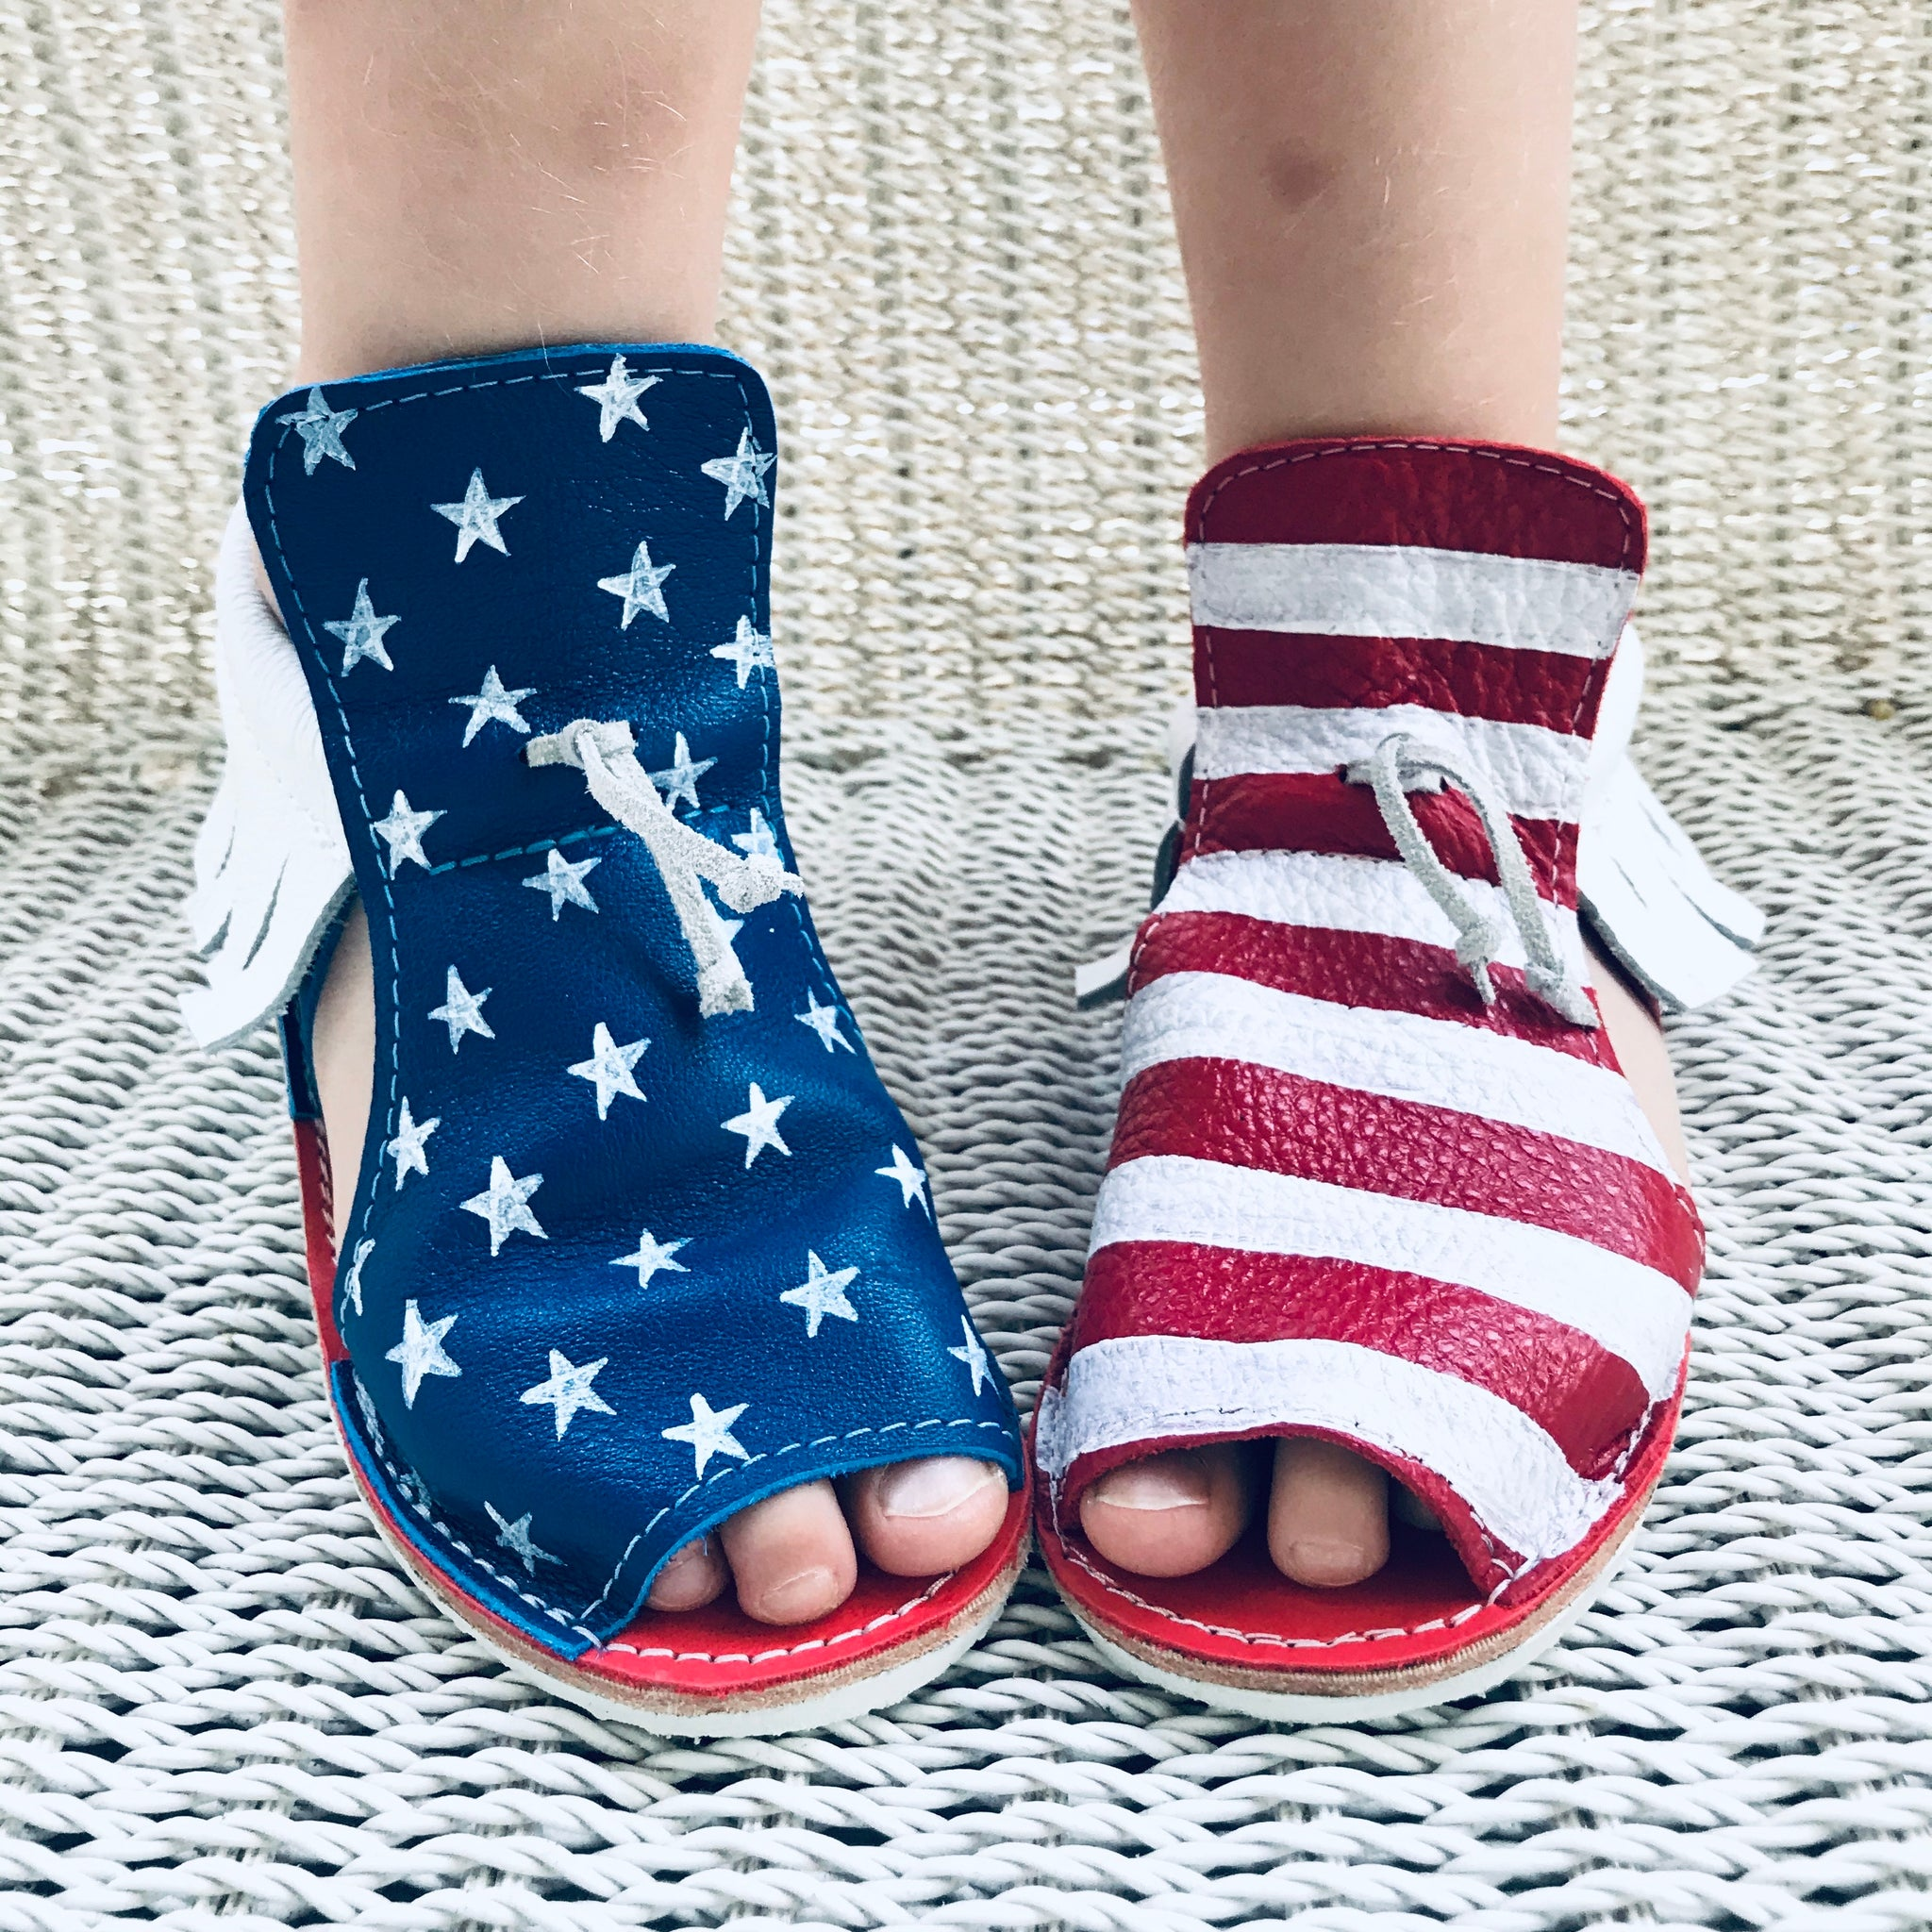 Americana sandals with rubber soles